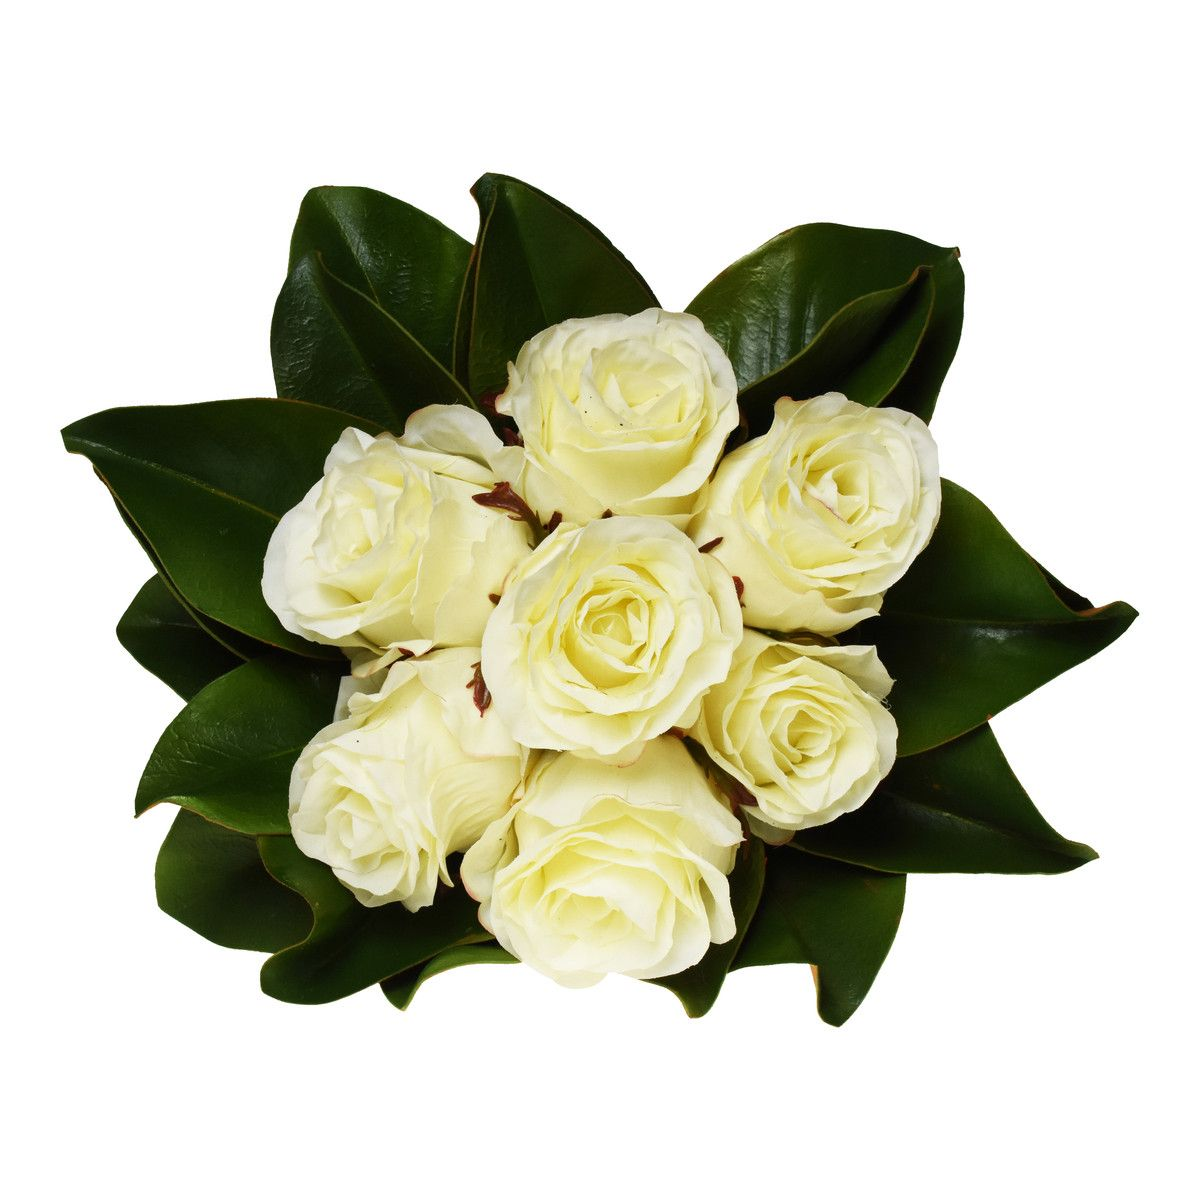 White Roses With Magnolia Leaves Simple In Design With White Roses